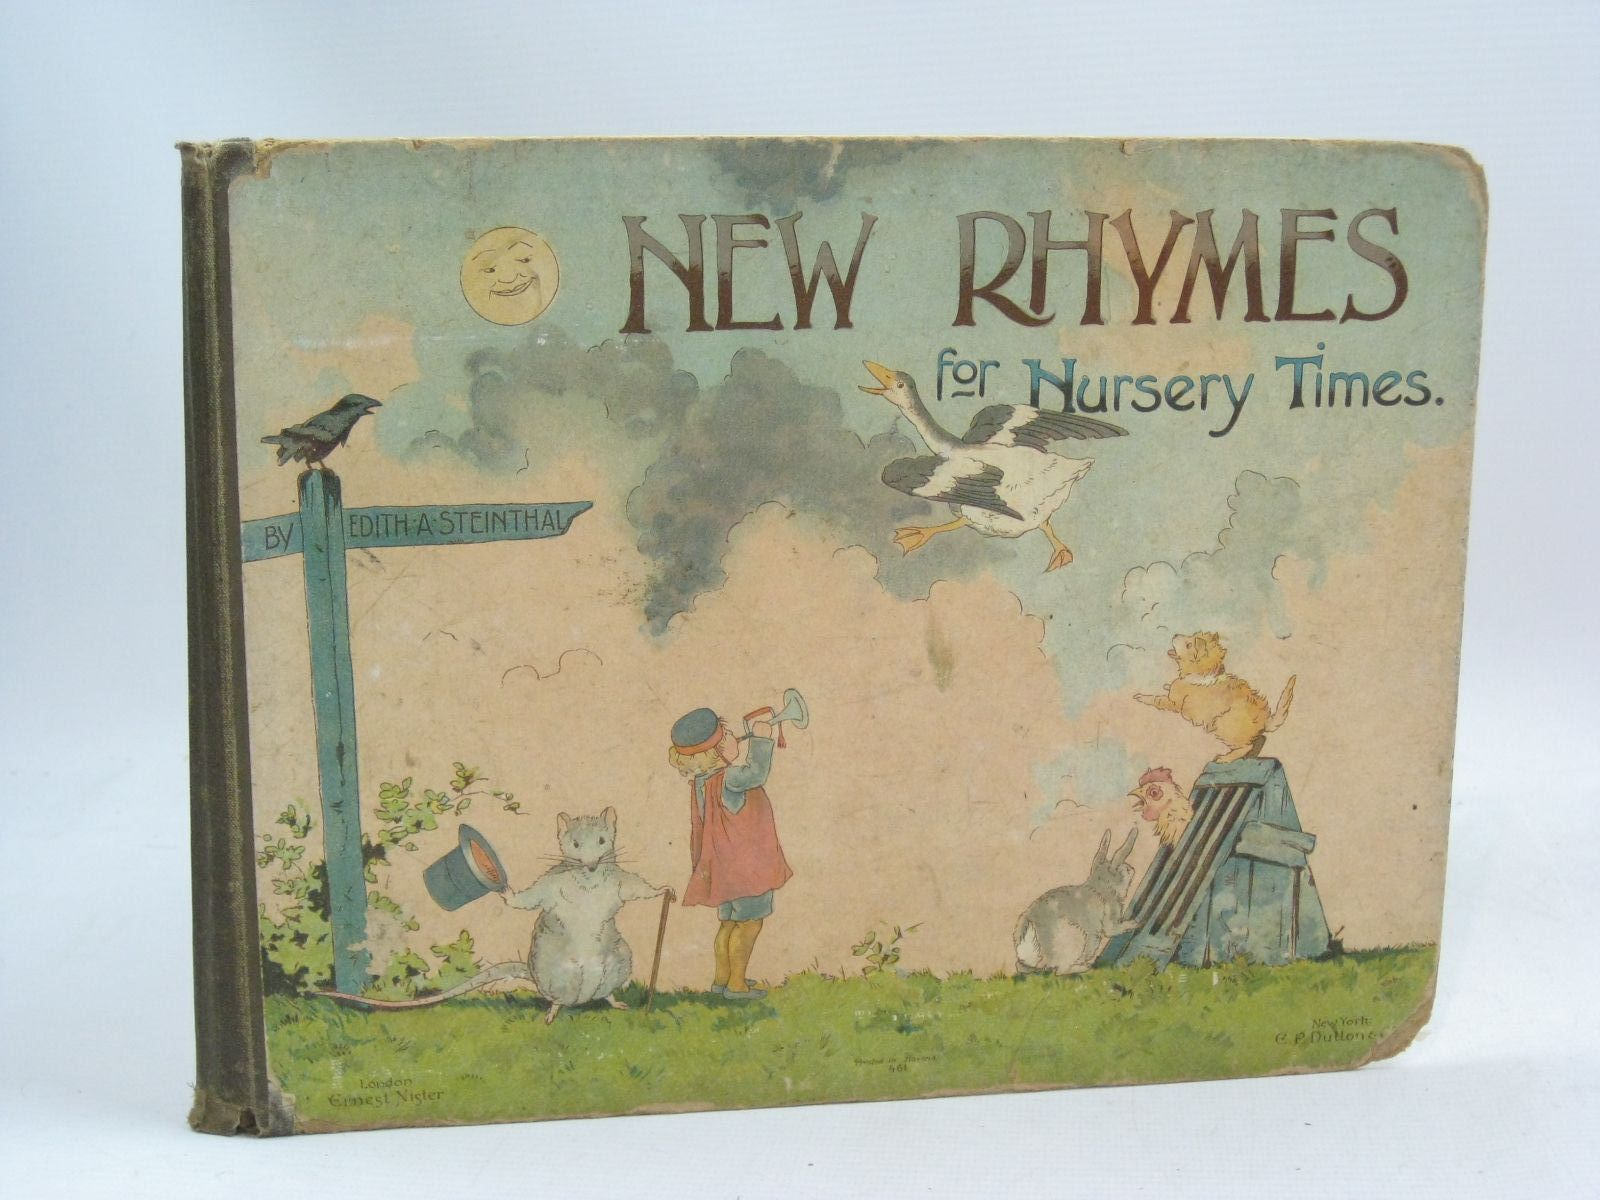 Photo of NEW RHYMES FOR NURSERY TIMES written by Steinthal, Edith A. published by E.P. Dutton & Co. (STOCK CODE: 1505879)  for sale by Stella & Rose's Books